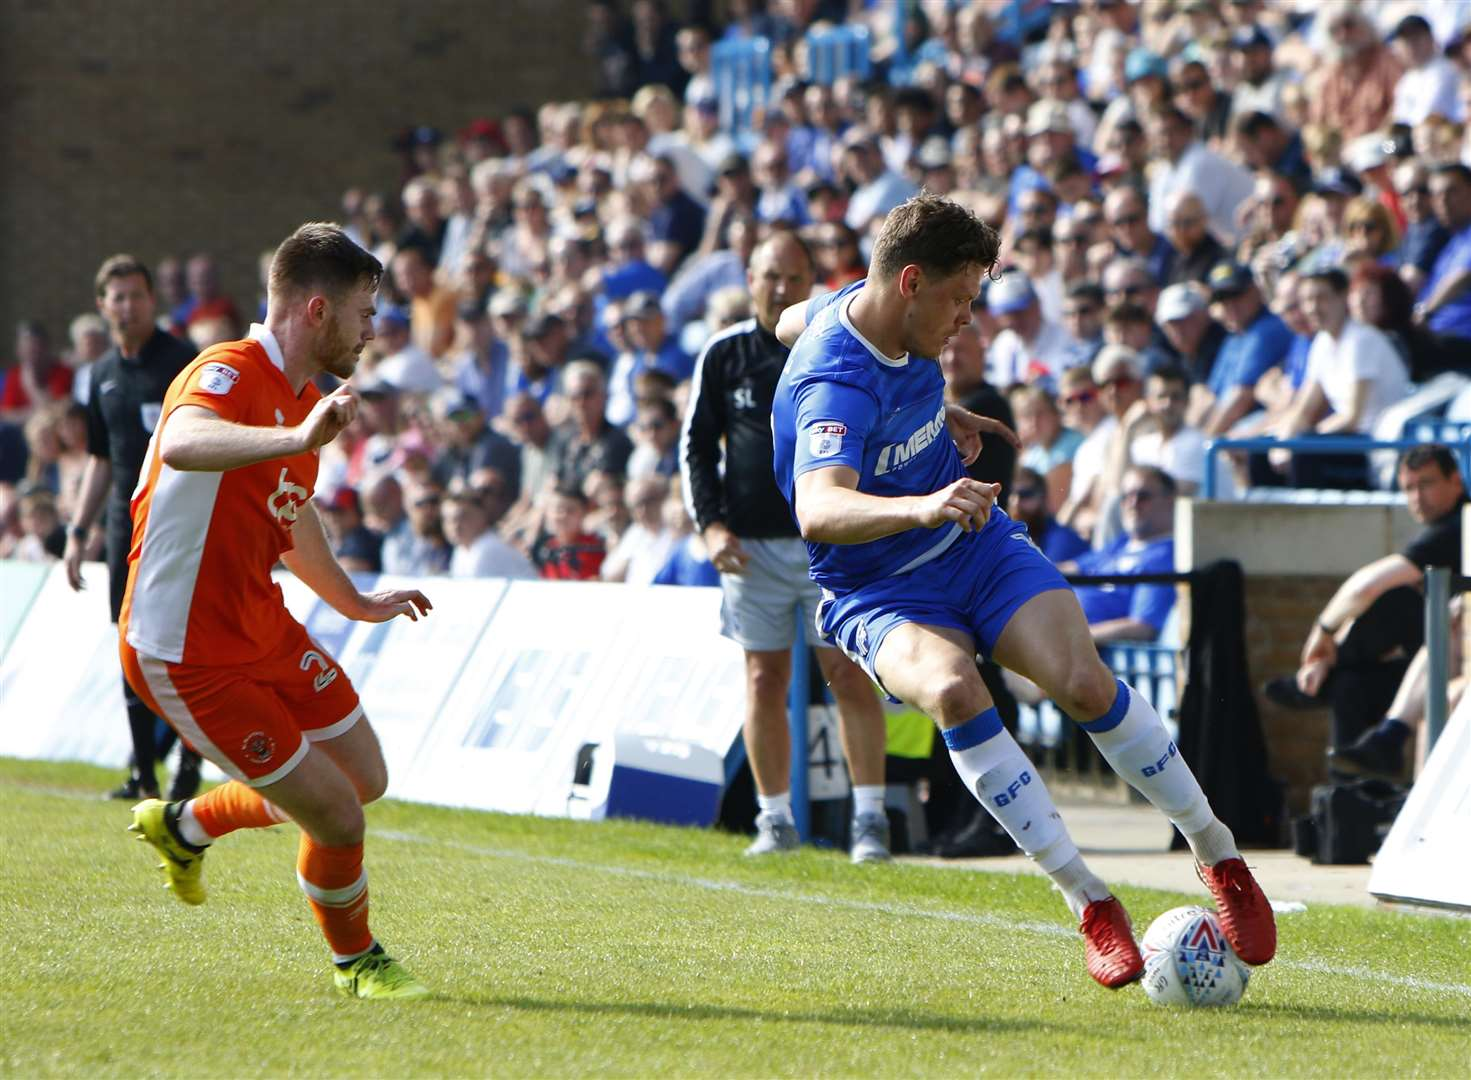 Gillingham defender Ben Nugent on the ball Picture: Andy Jones